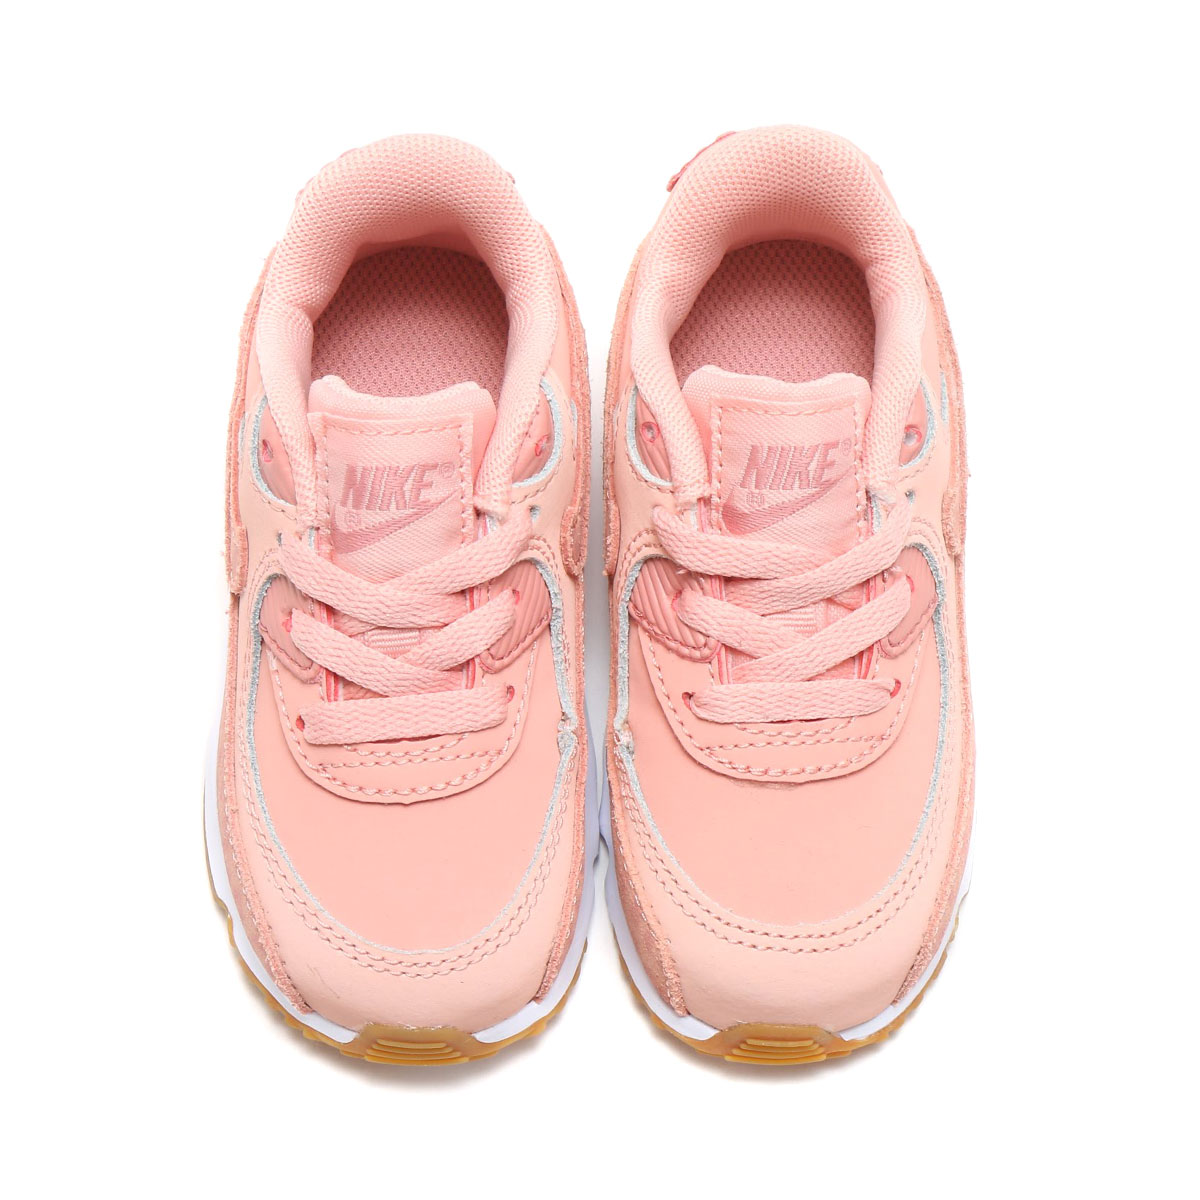 9fef51c1acaf NIKE AIR MAX 90 SE LTR (TD) (Kie Ney AMAX 90 SE leather TD) (CORAL STARDUST RUST  PINK-WHITE) 18SP-I